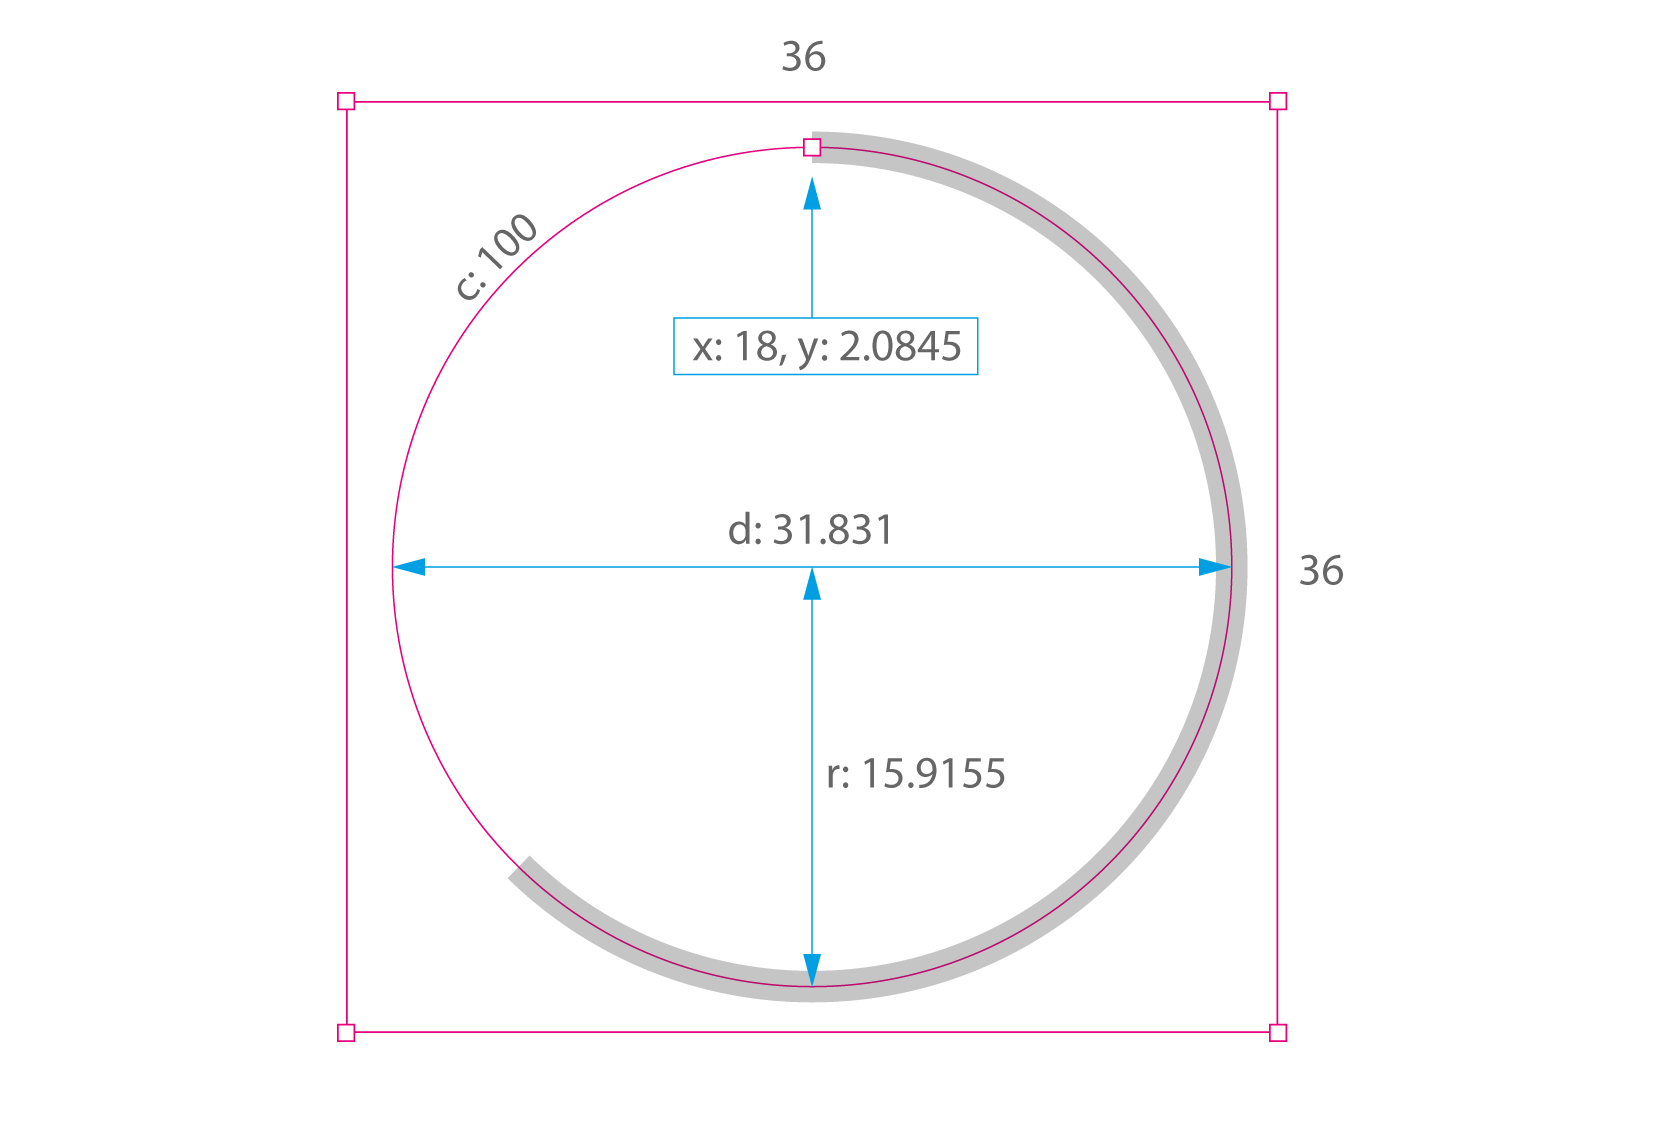 How to code a responsive circular percentage chart with SVG